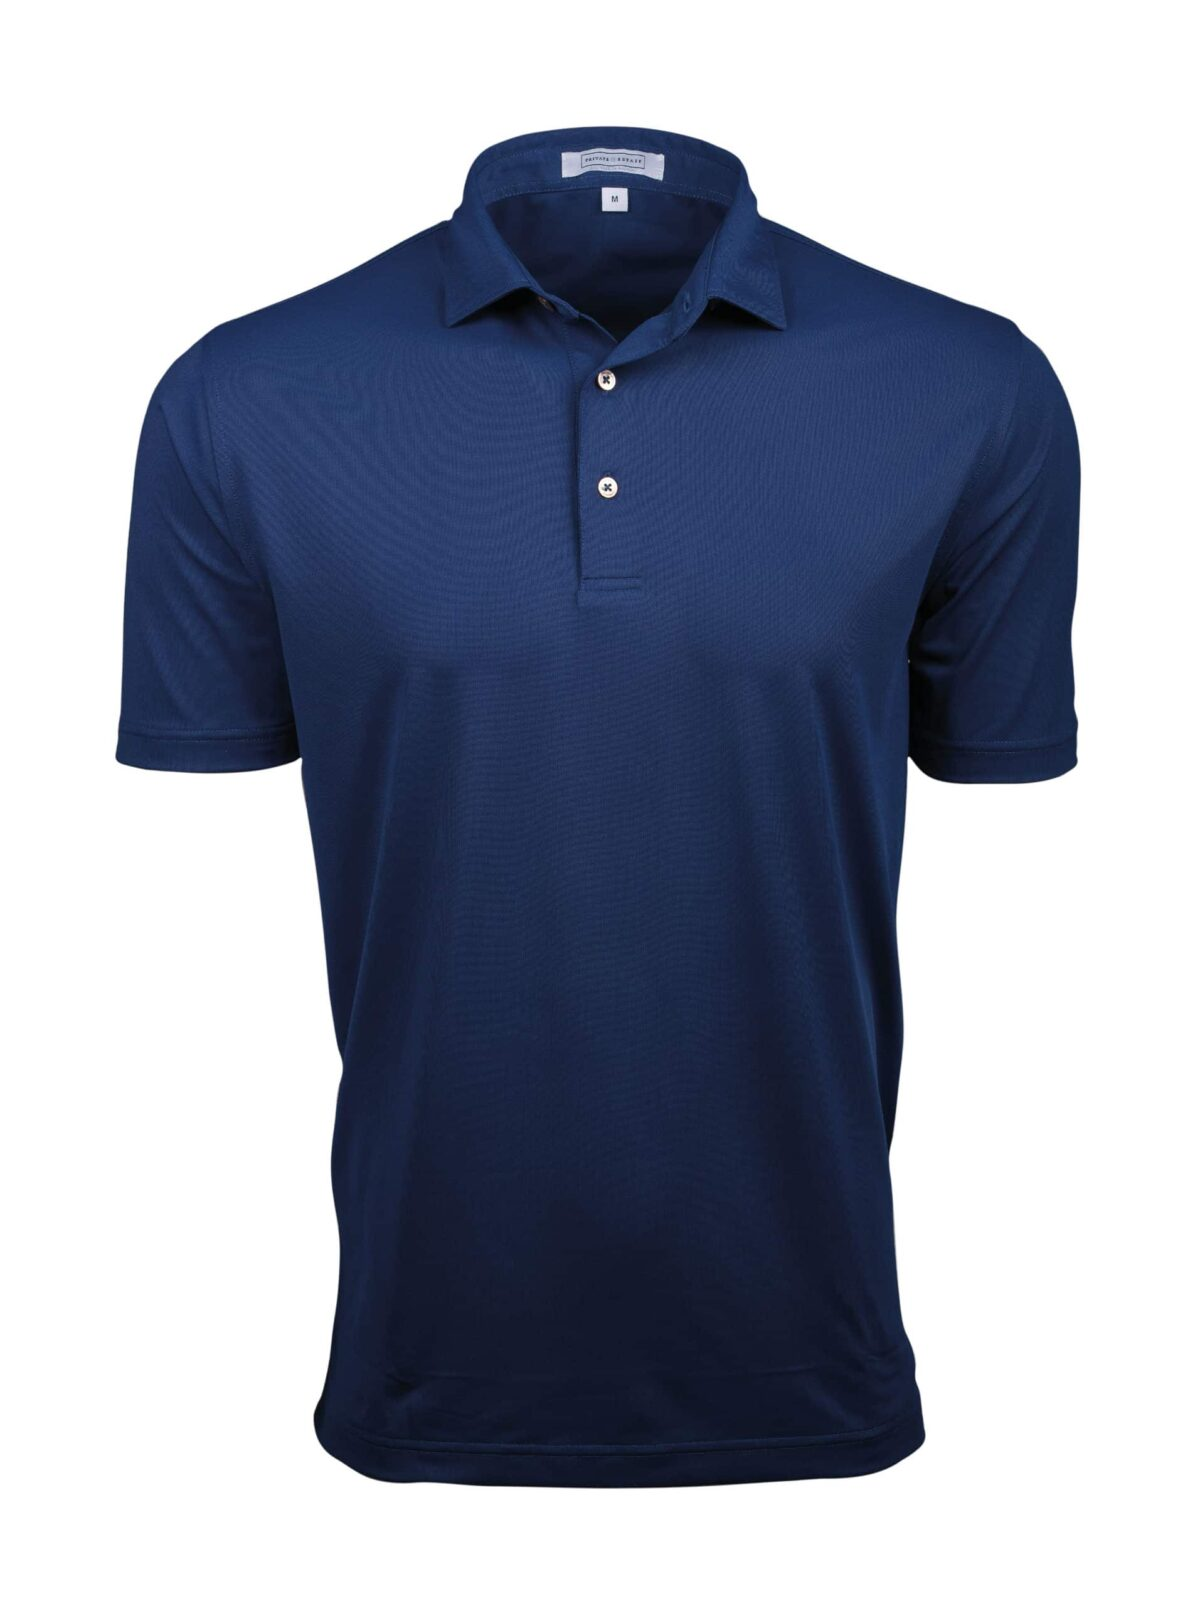 Fenix XCell PE Solid Bright Navy Performance Polo Shirt For Men